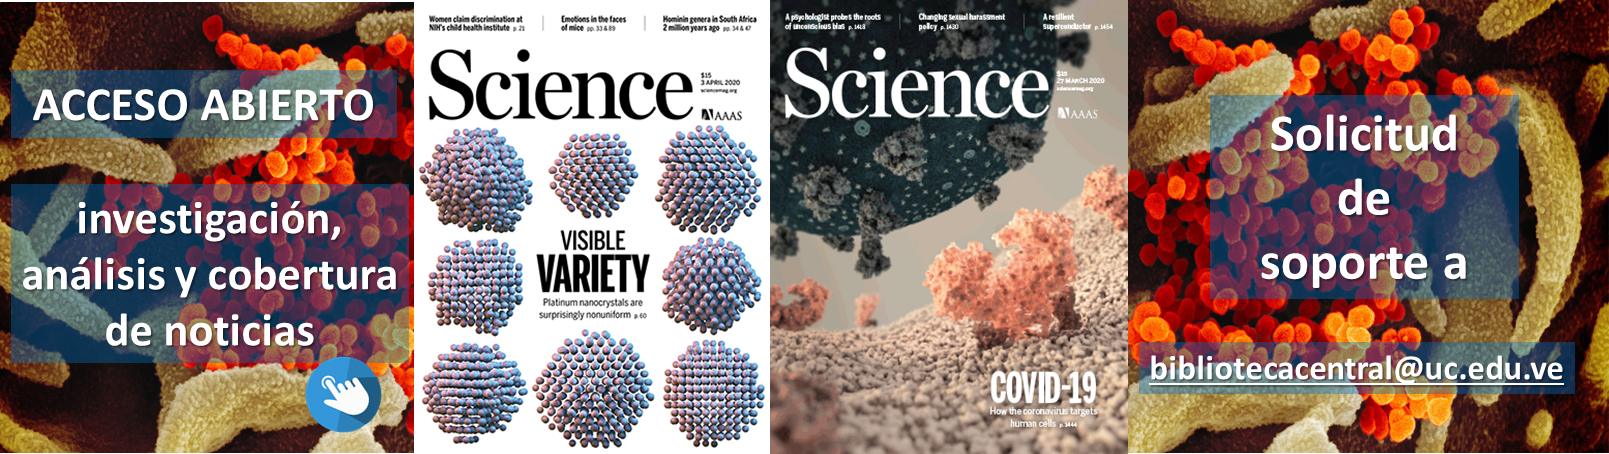 Coronavirus: Research, Commentary, and News. @sciencemagazine